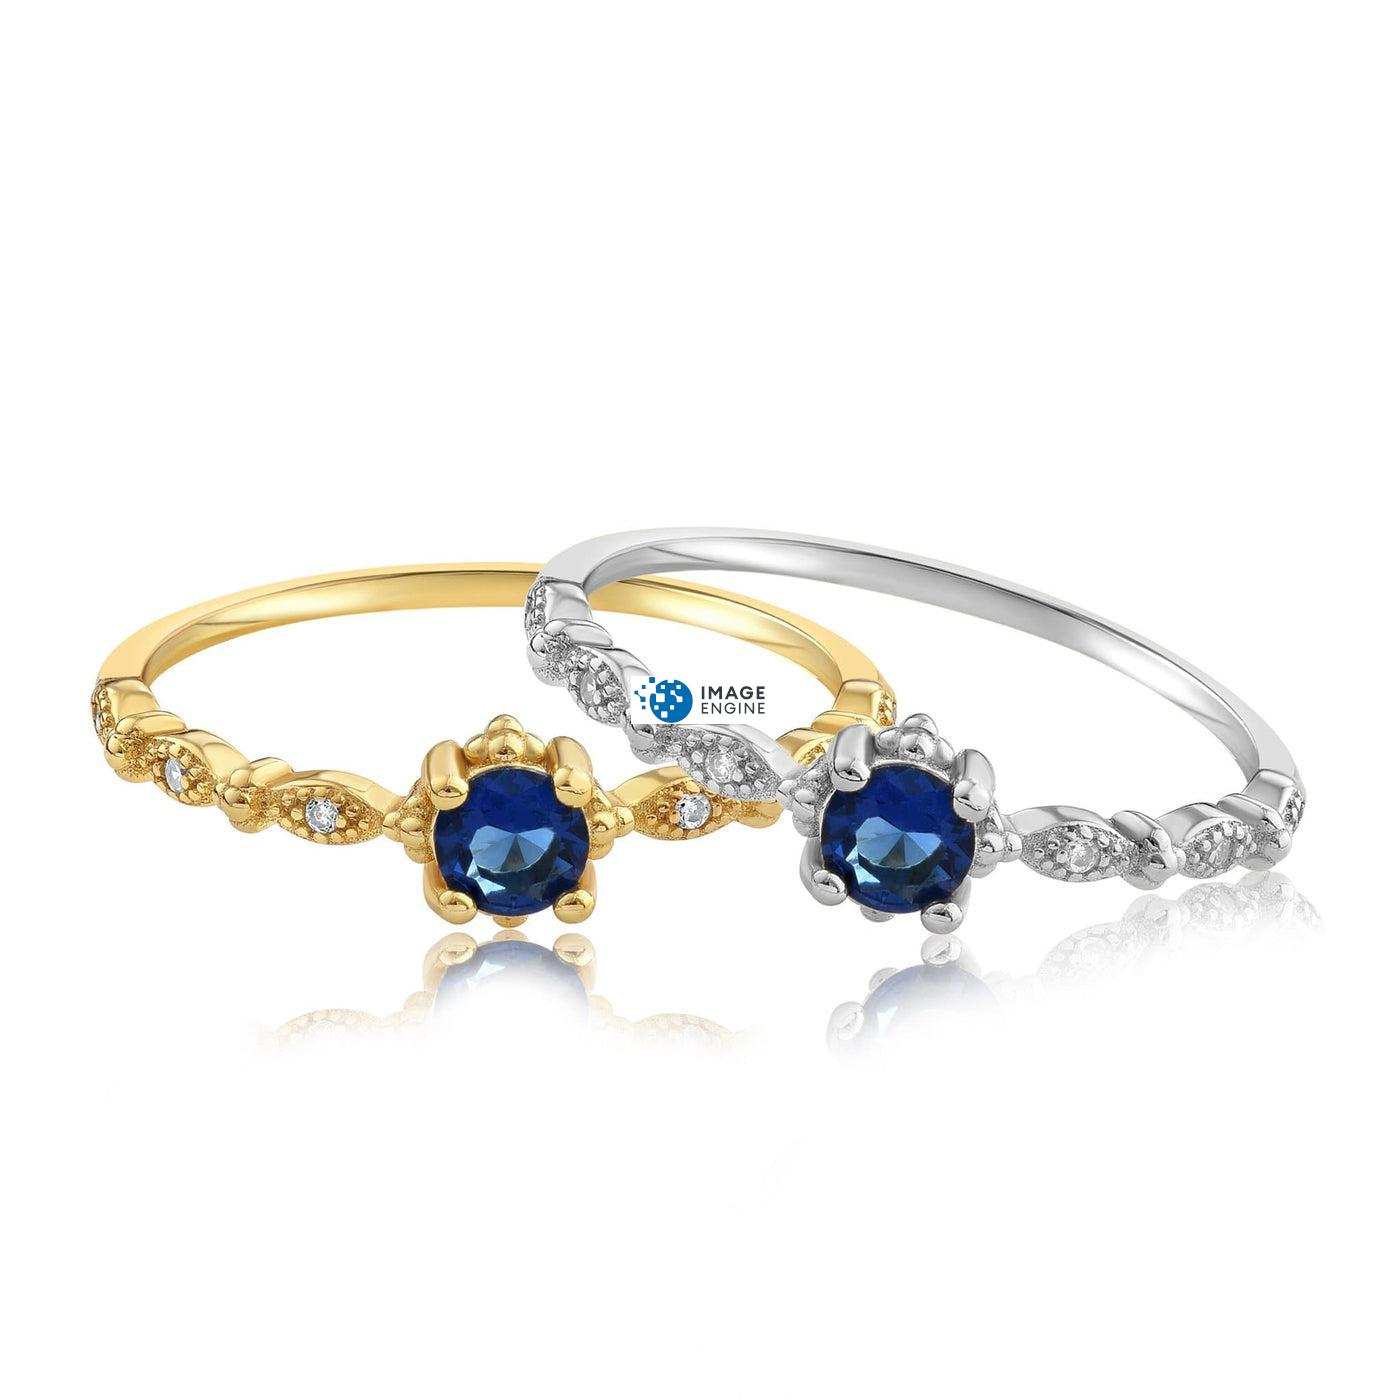 Garen Ring Blue Gemstone - Front View Side by Side - 18K Yellow Gold Vermeil and 925 Sterling Silver